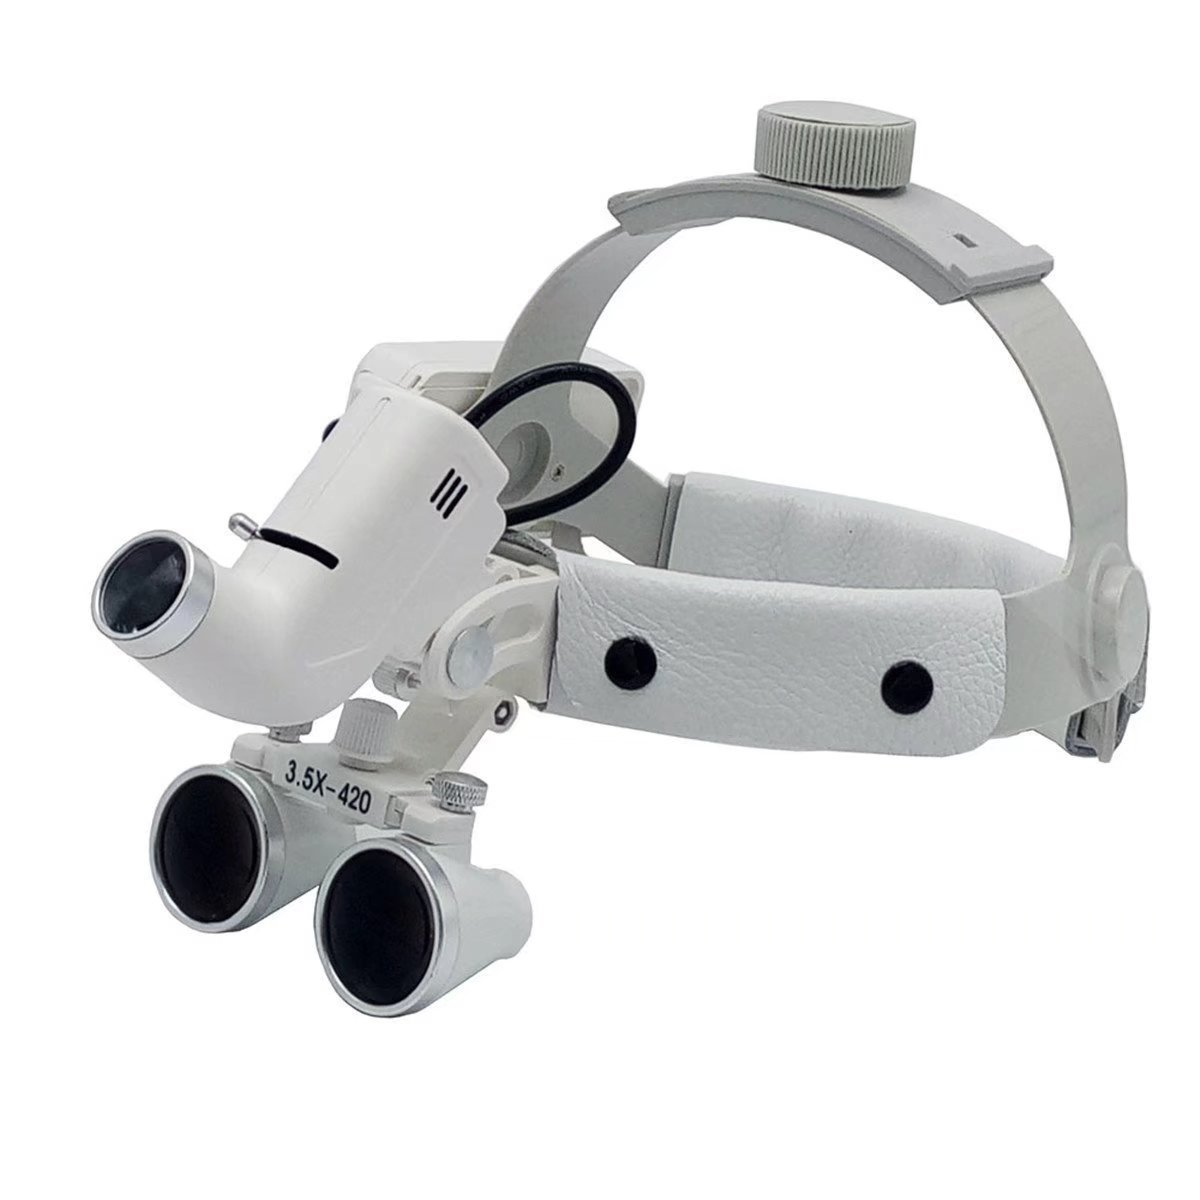 SoHome Dental Surgical Medical 3.5X420mm Adjustable Headband Loupe with LED Headlight DY-106 White